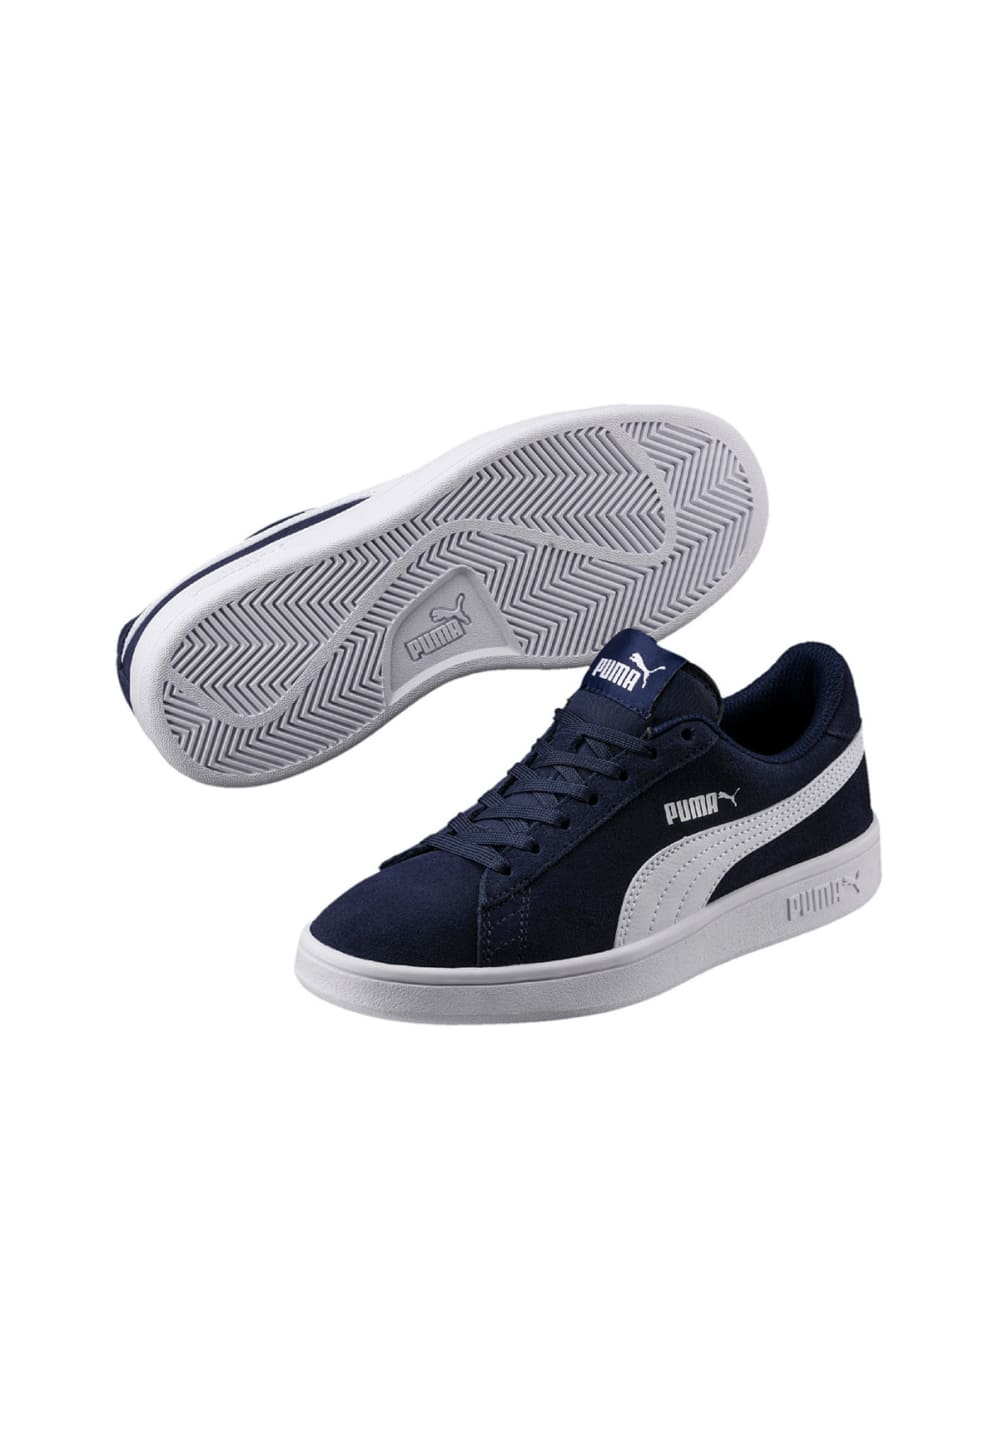 Home · Shop · Puma Smash v2 SD Jr - Sneaker - Blue. Back to Overview. This  product is currently out of stock. 5f45603fe